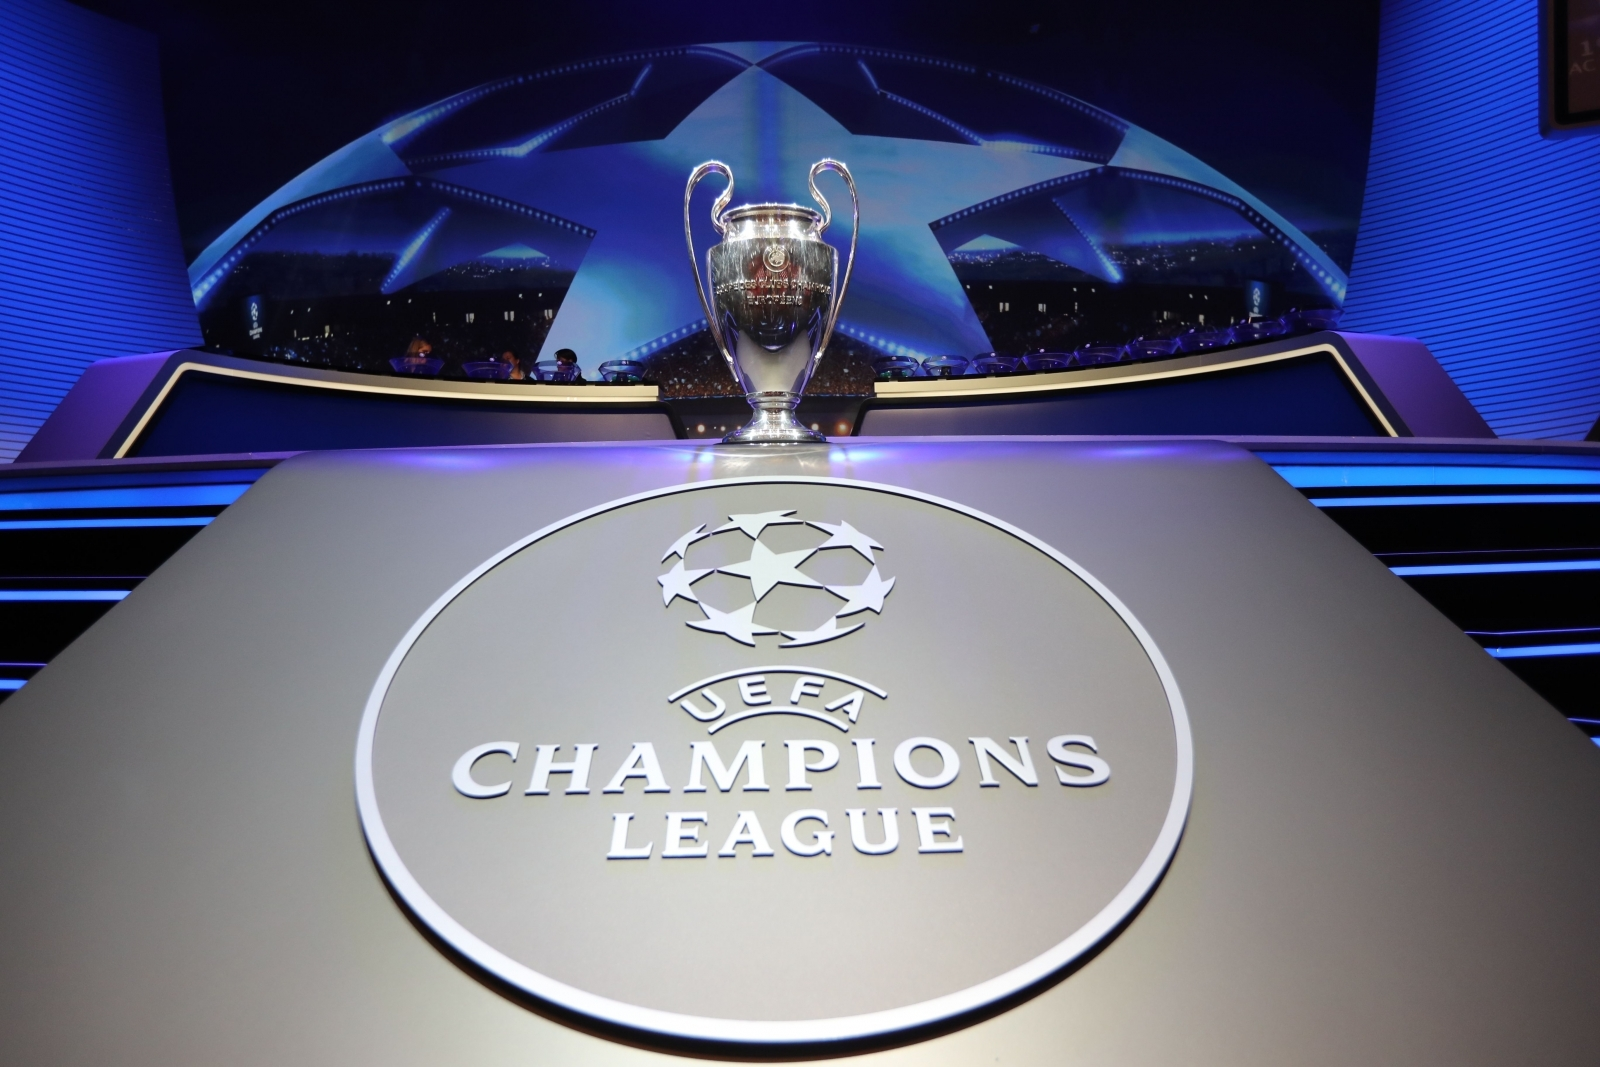 Champions League 201718 Round Of 16 Draw How To Watch